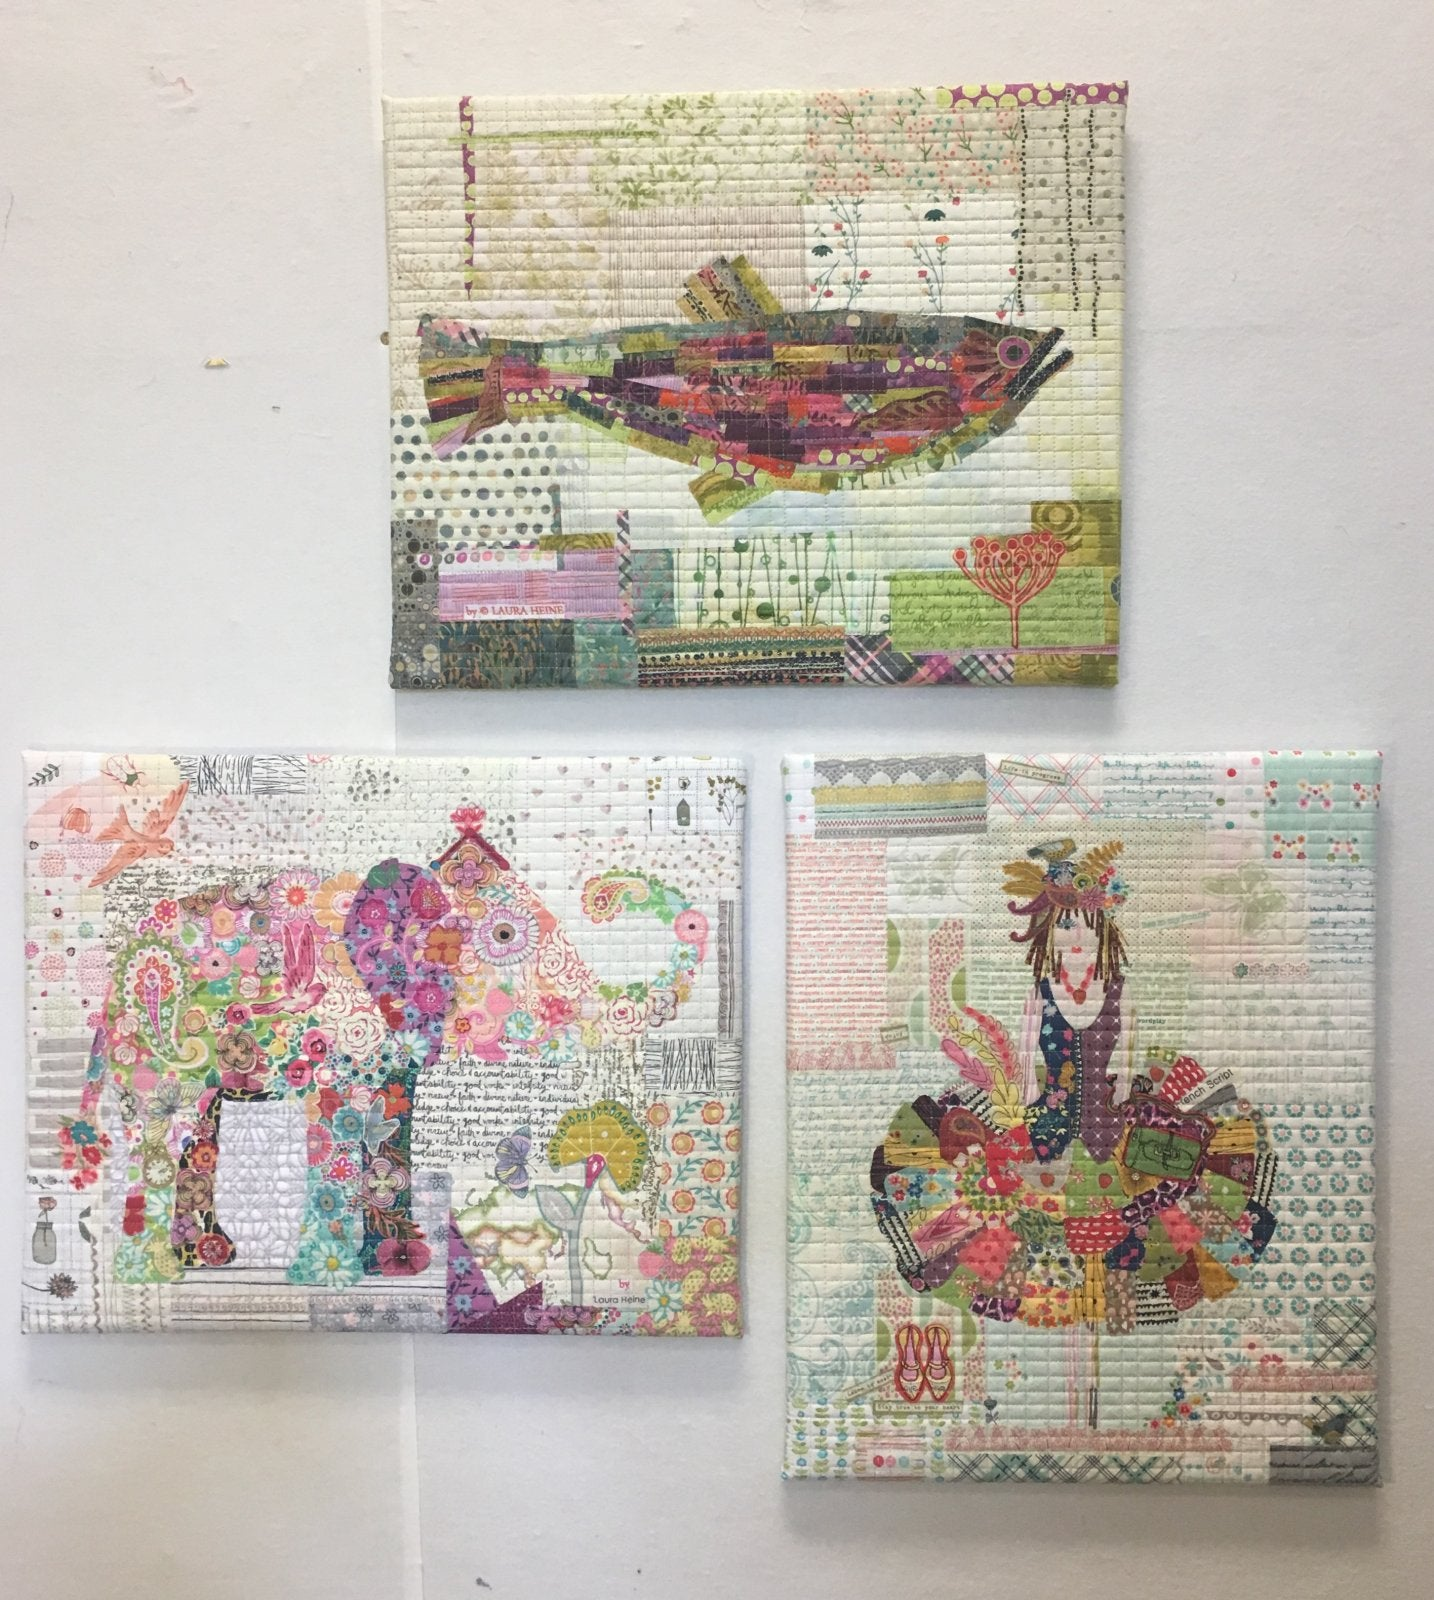 Teeny Tiny Pattern Group 1 - Collage Patterns by Laura Heine